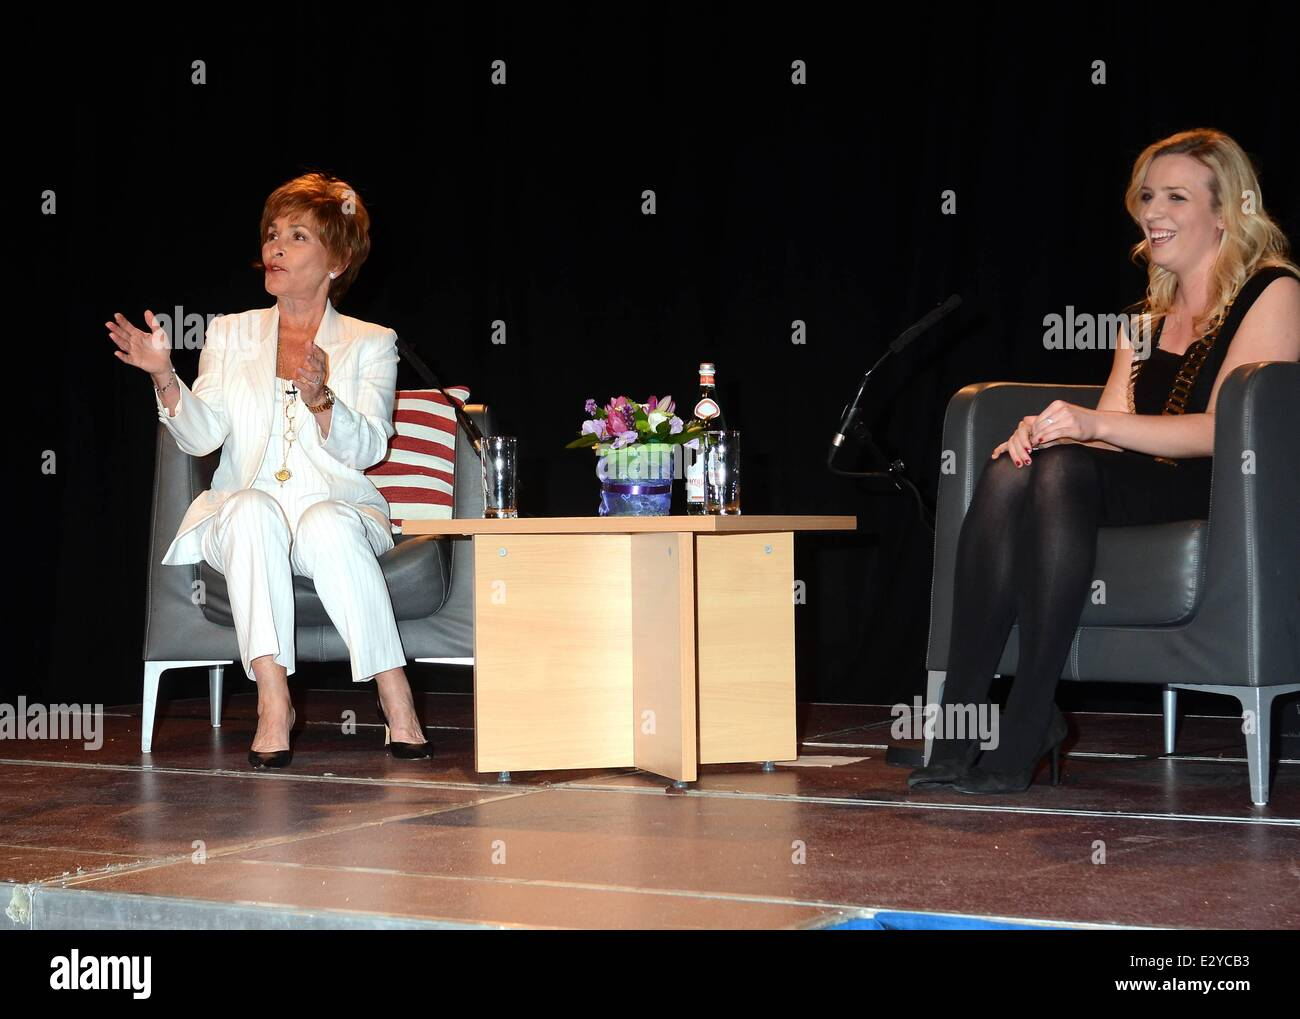 America S Highest Paid Television Personality Judge Judith Stock Photo Alamy